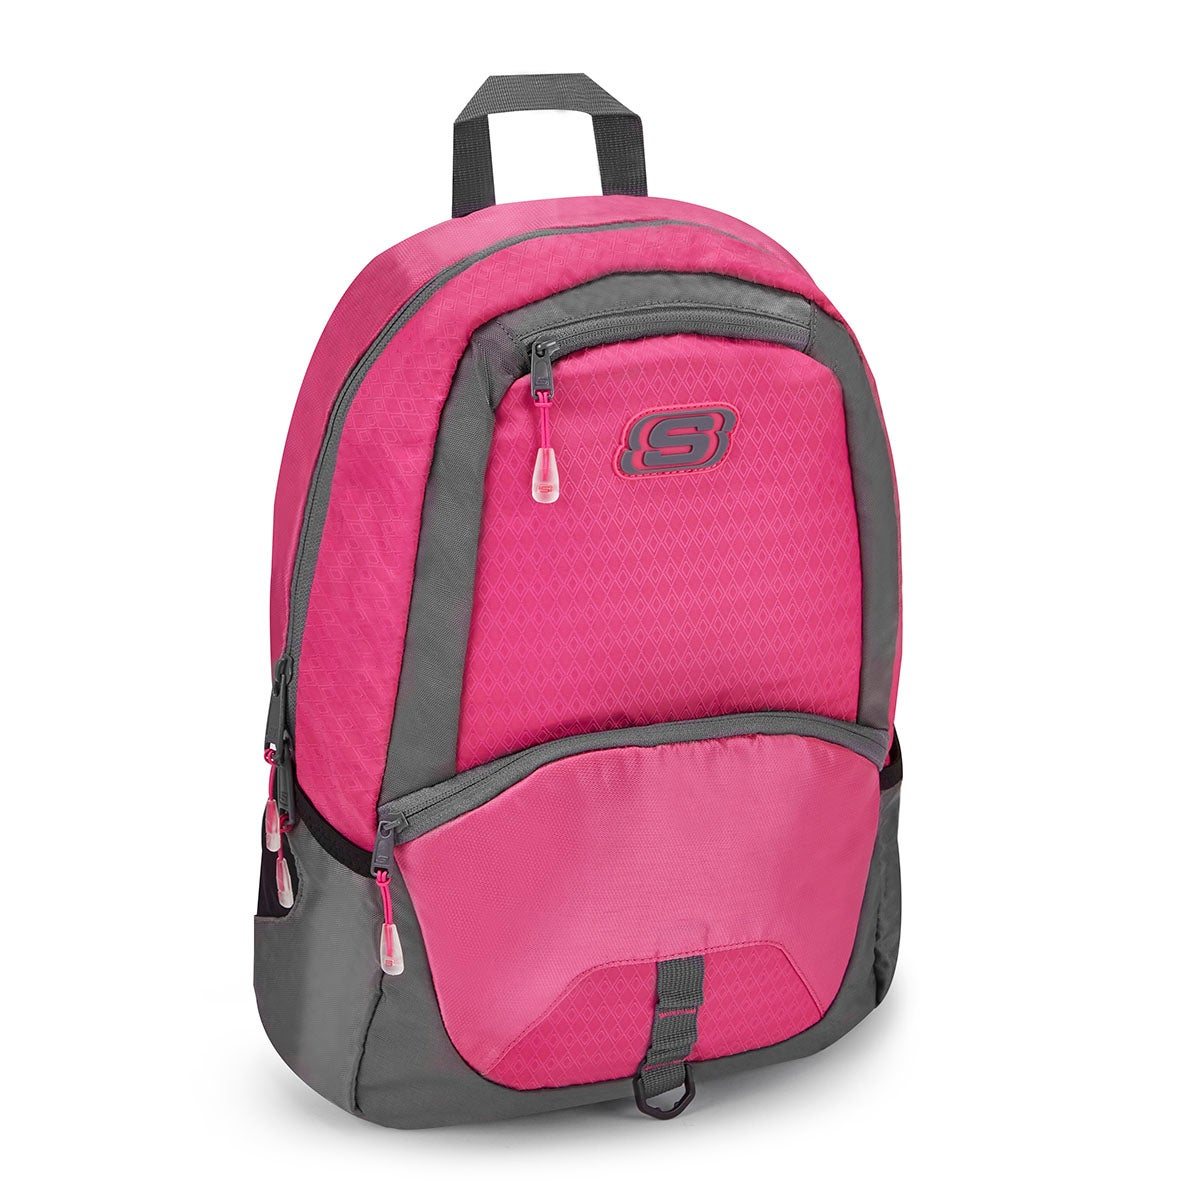 Girls' TOTAL SPEEDWAY OVERDRIVE pink backpack